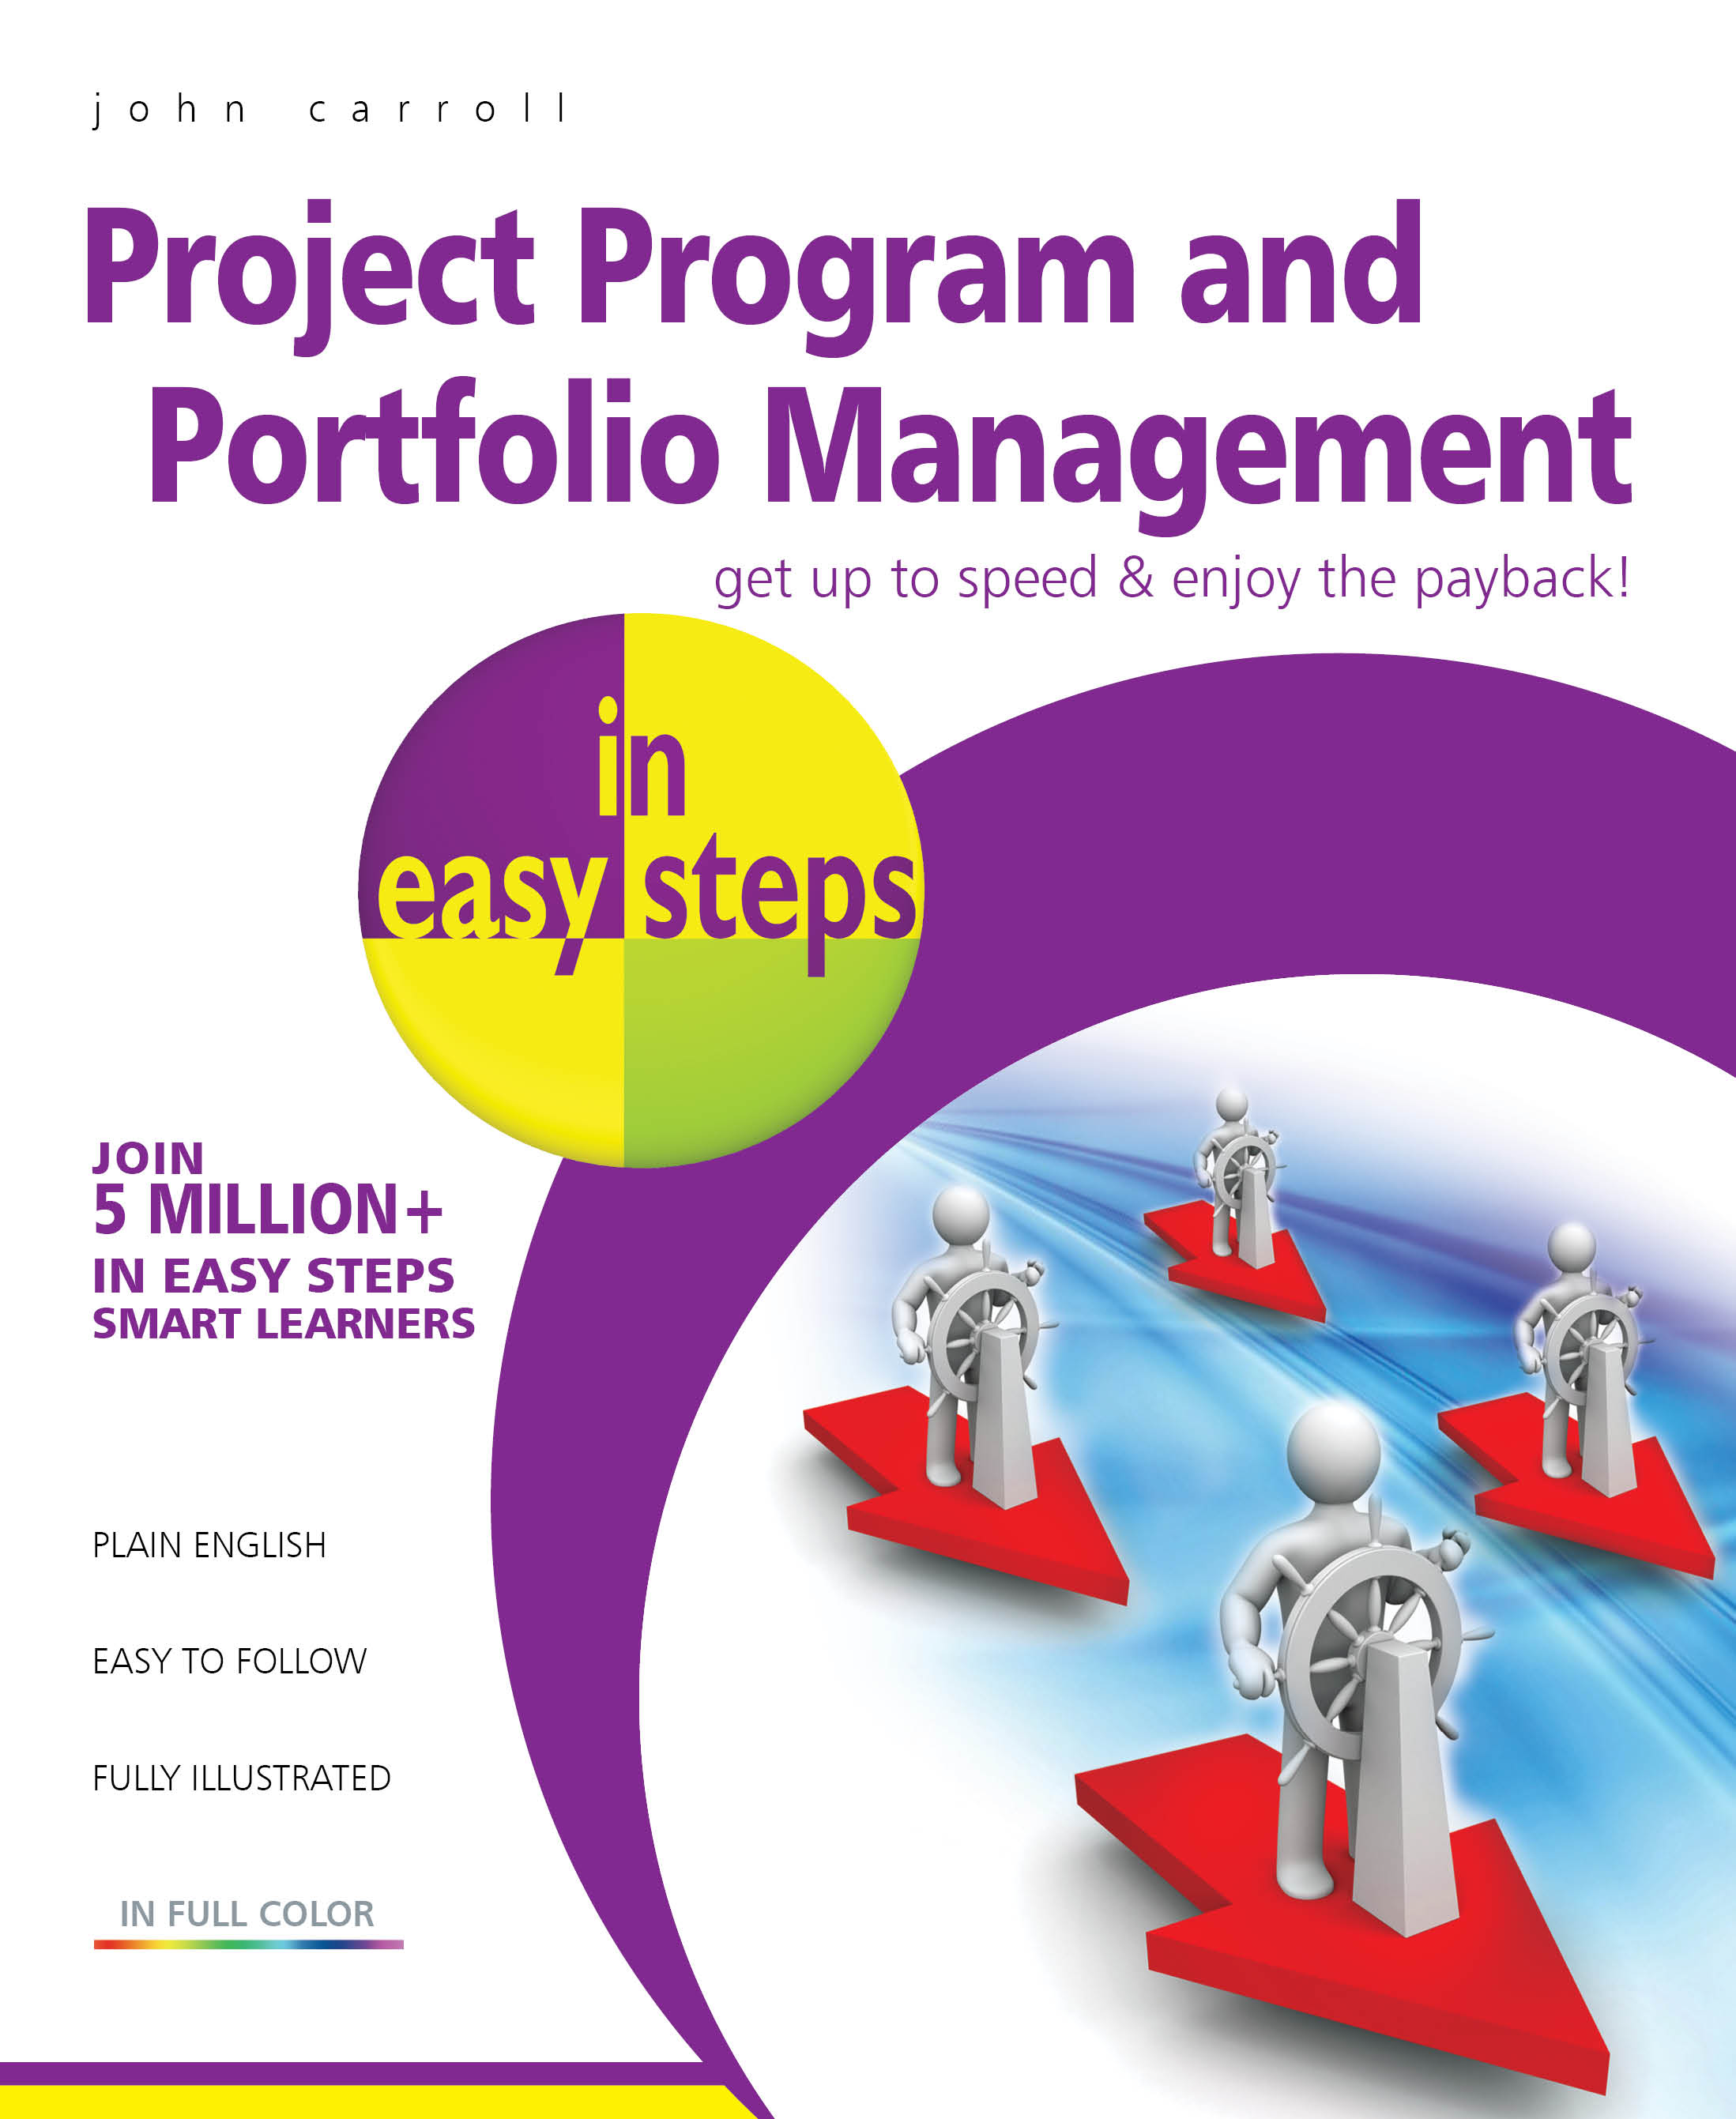 Mastering the project requirements